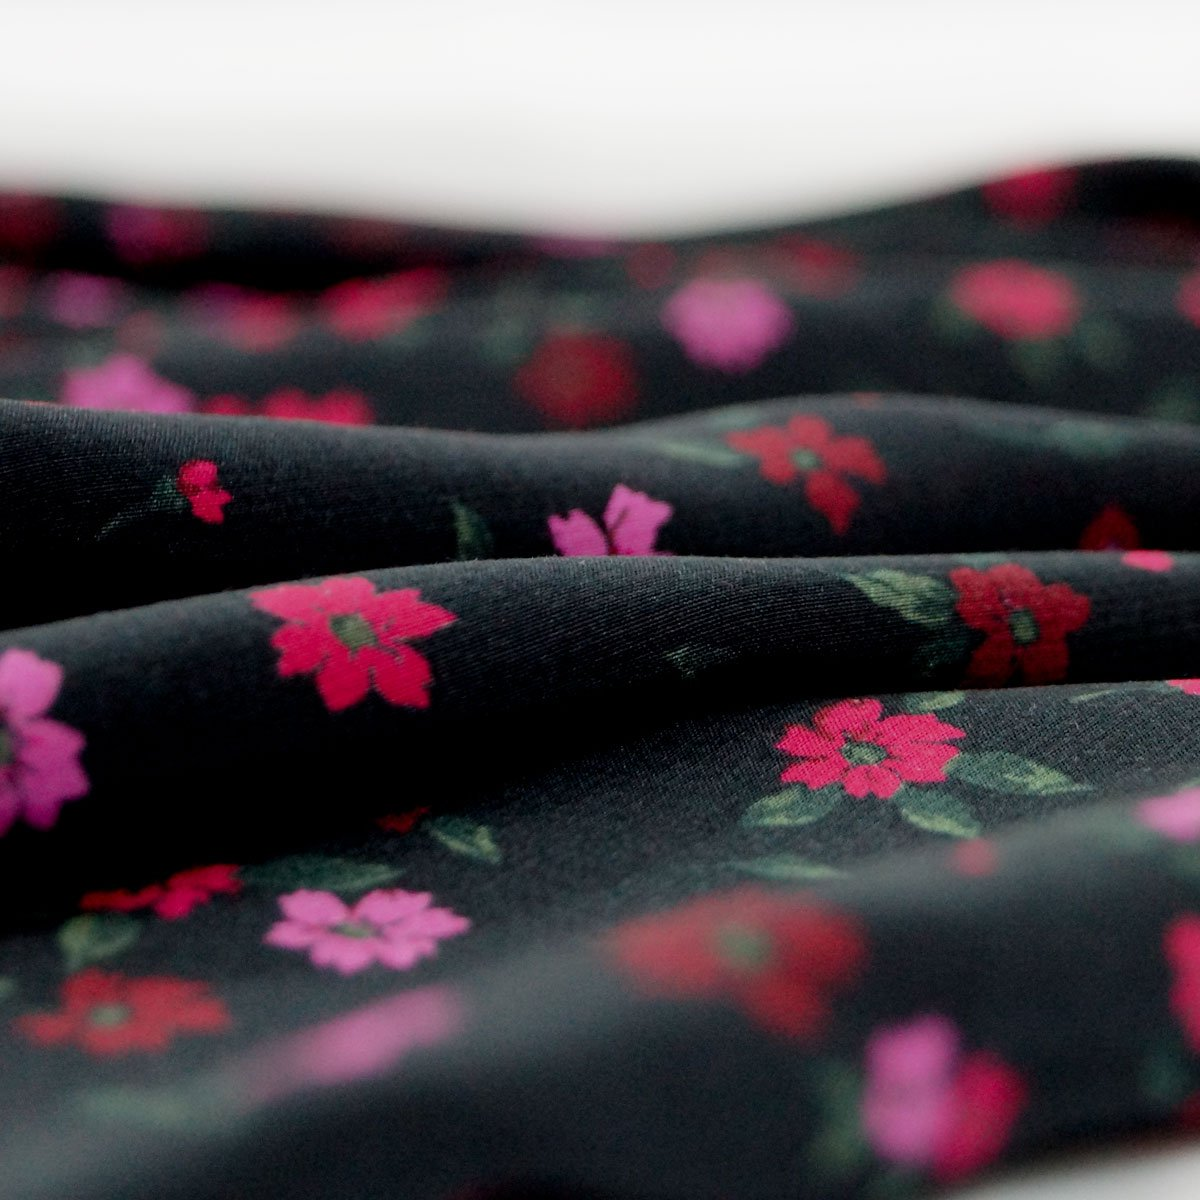 Rayon - Black with Small Red & Pink Flowers